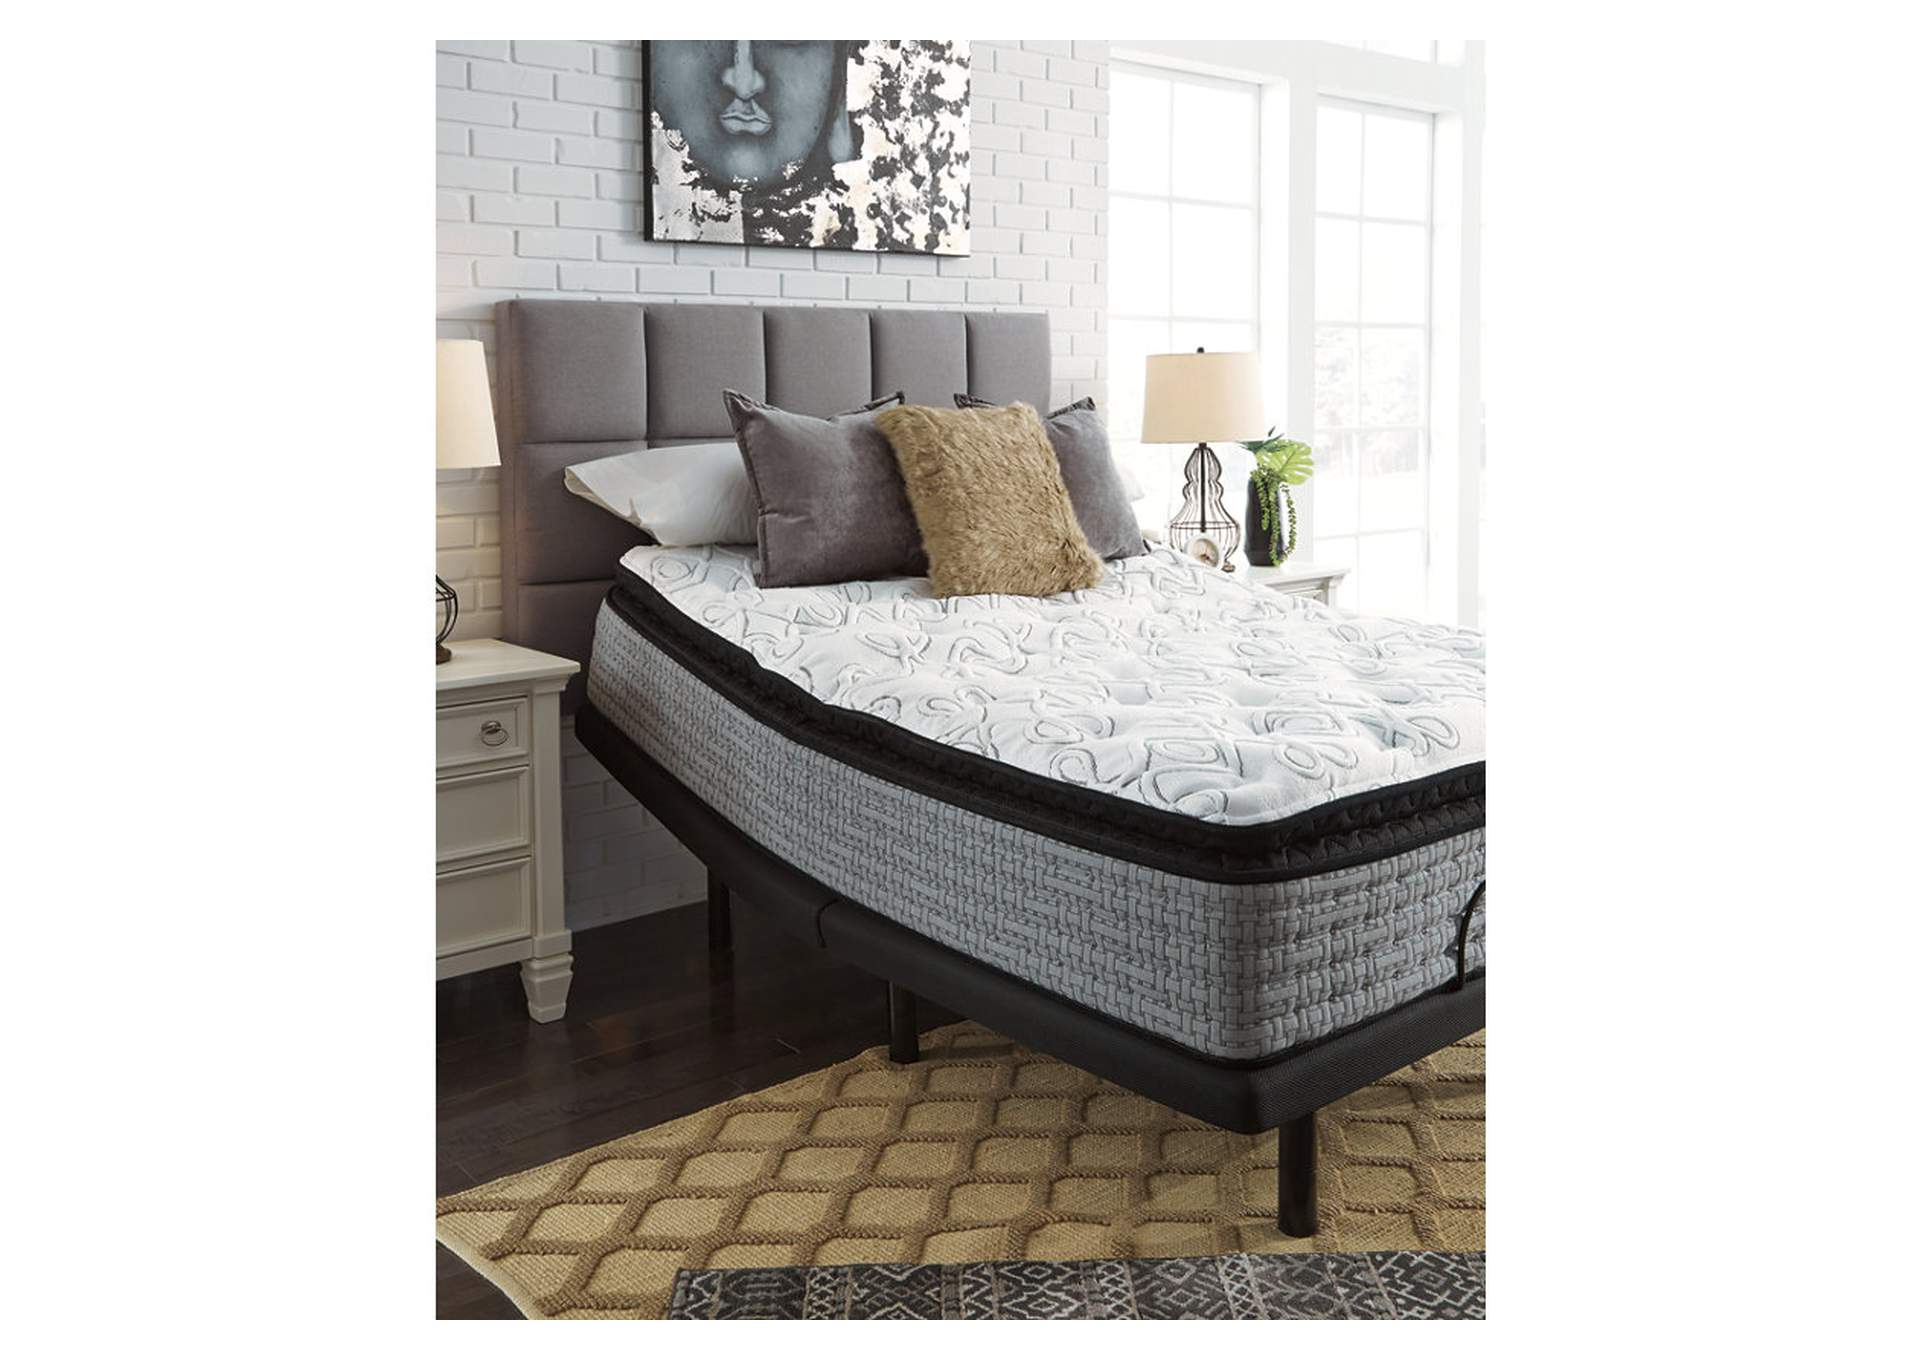 Mt Rogers Ltd Pillowtop California King Mattress,Sierra Sleep by Ashley